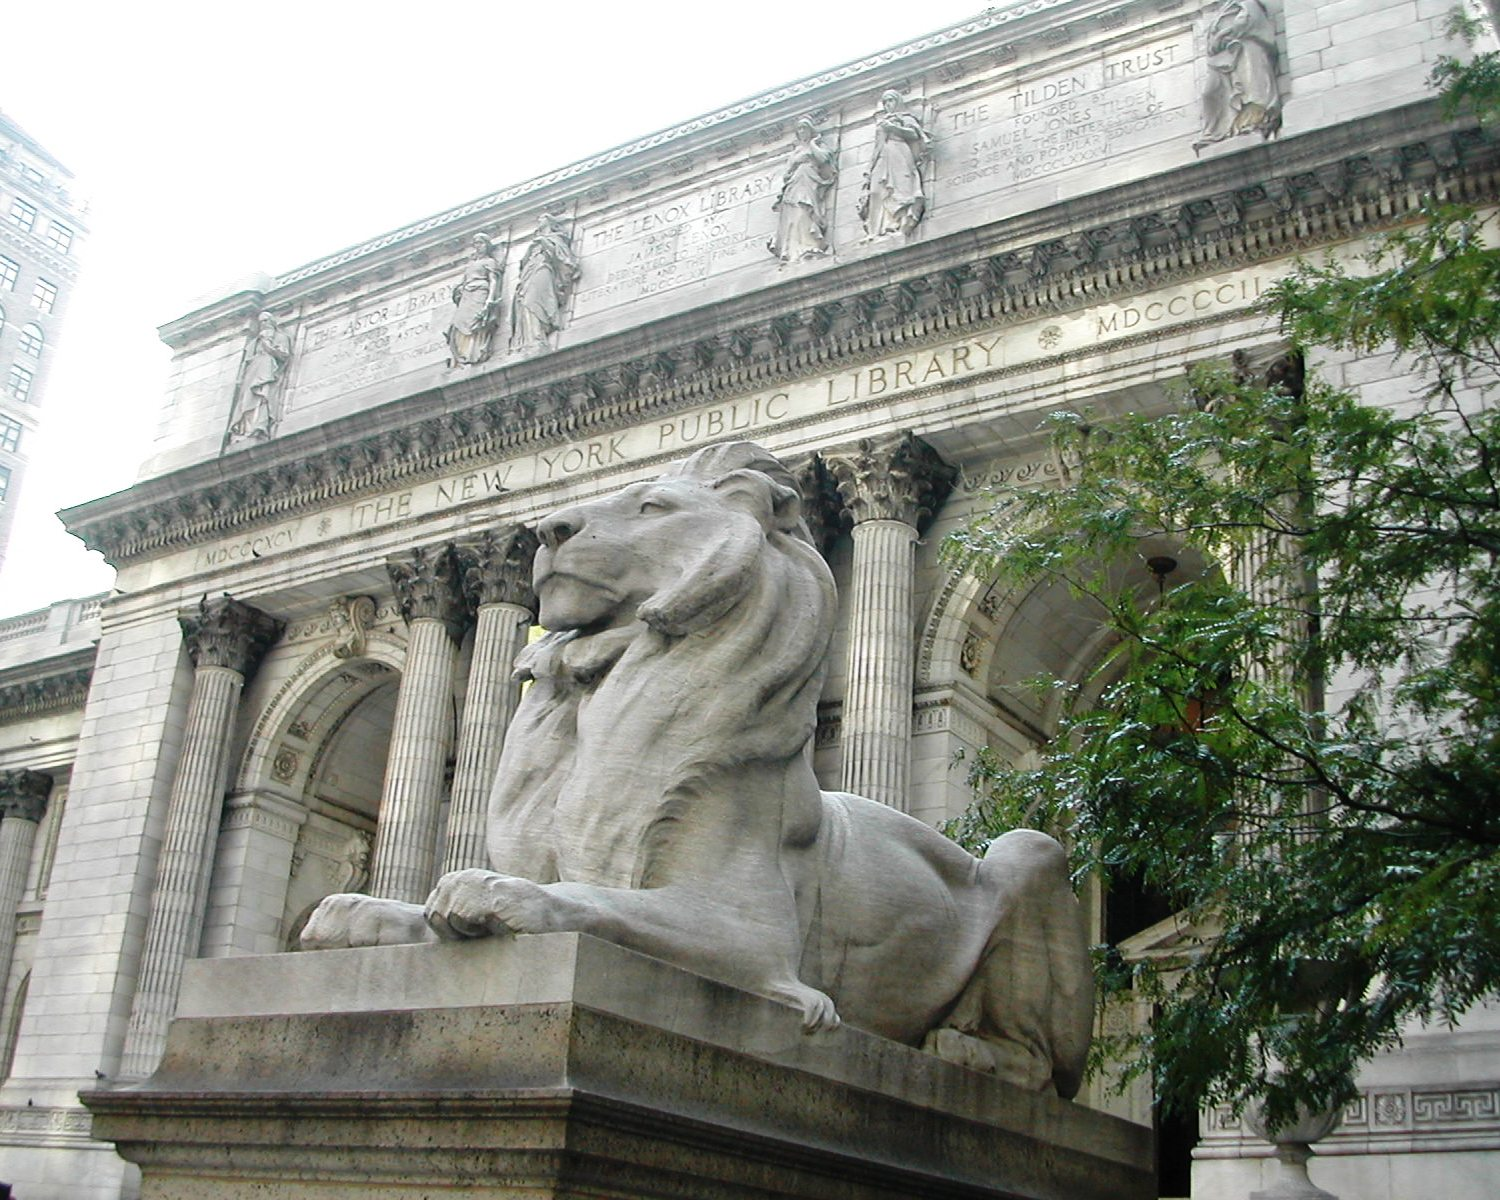 The New York Public Library's iconic lions.